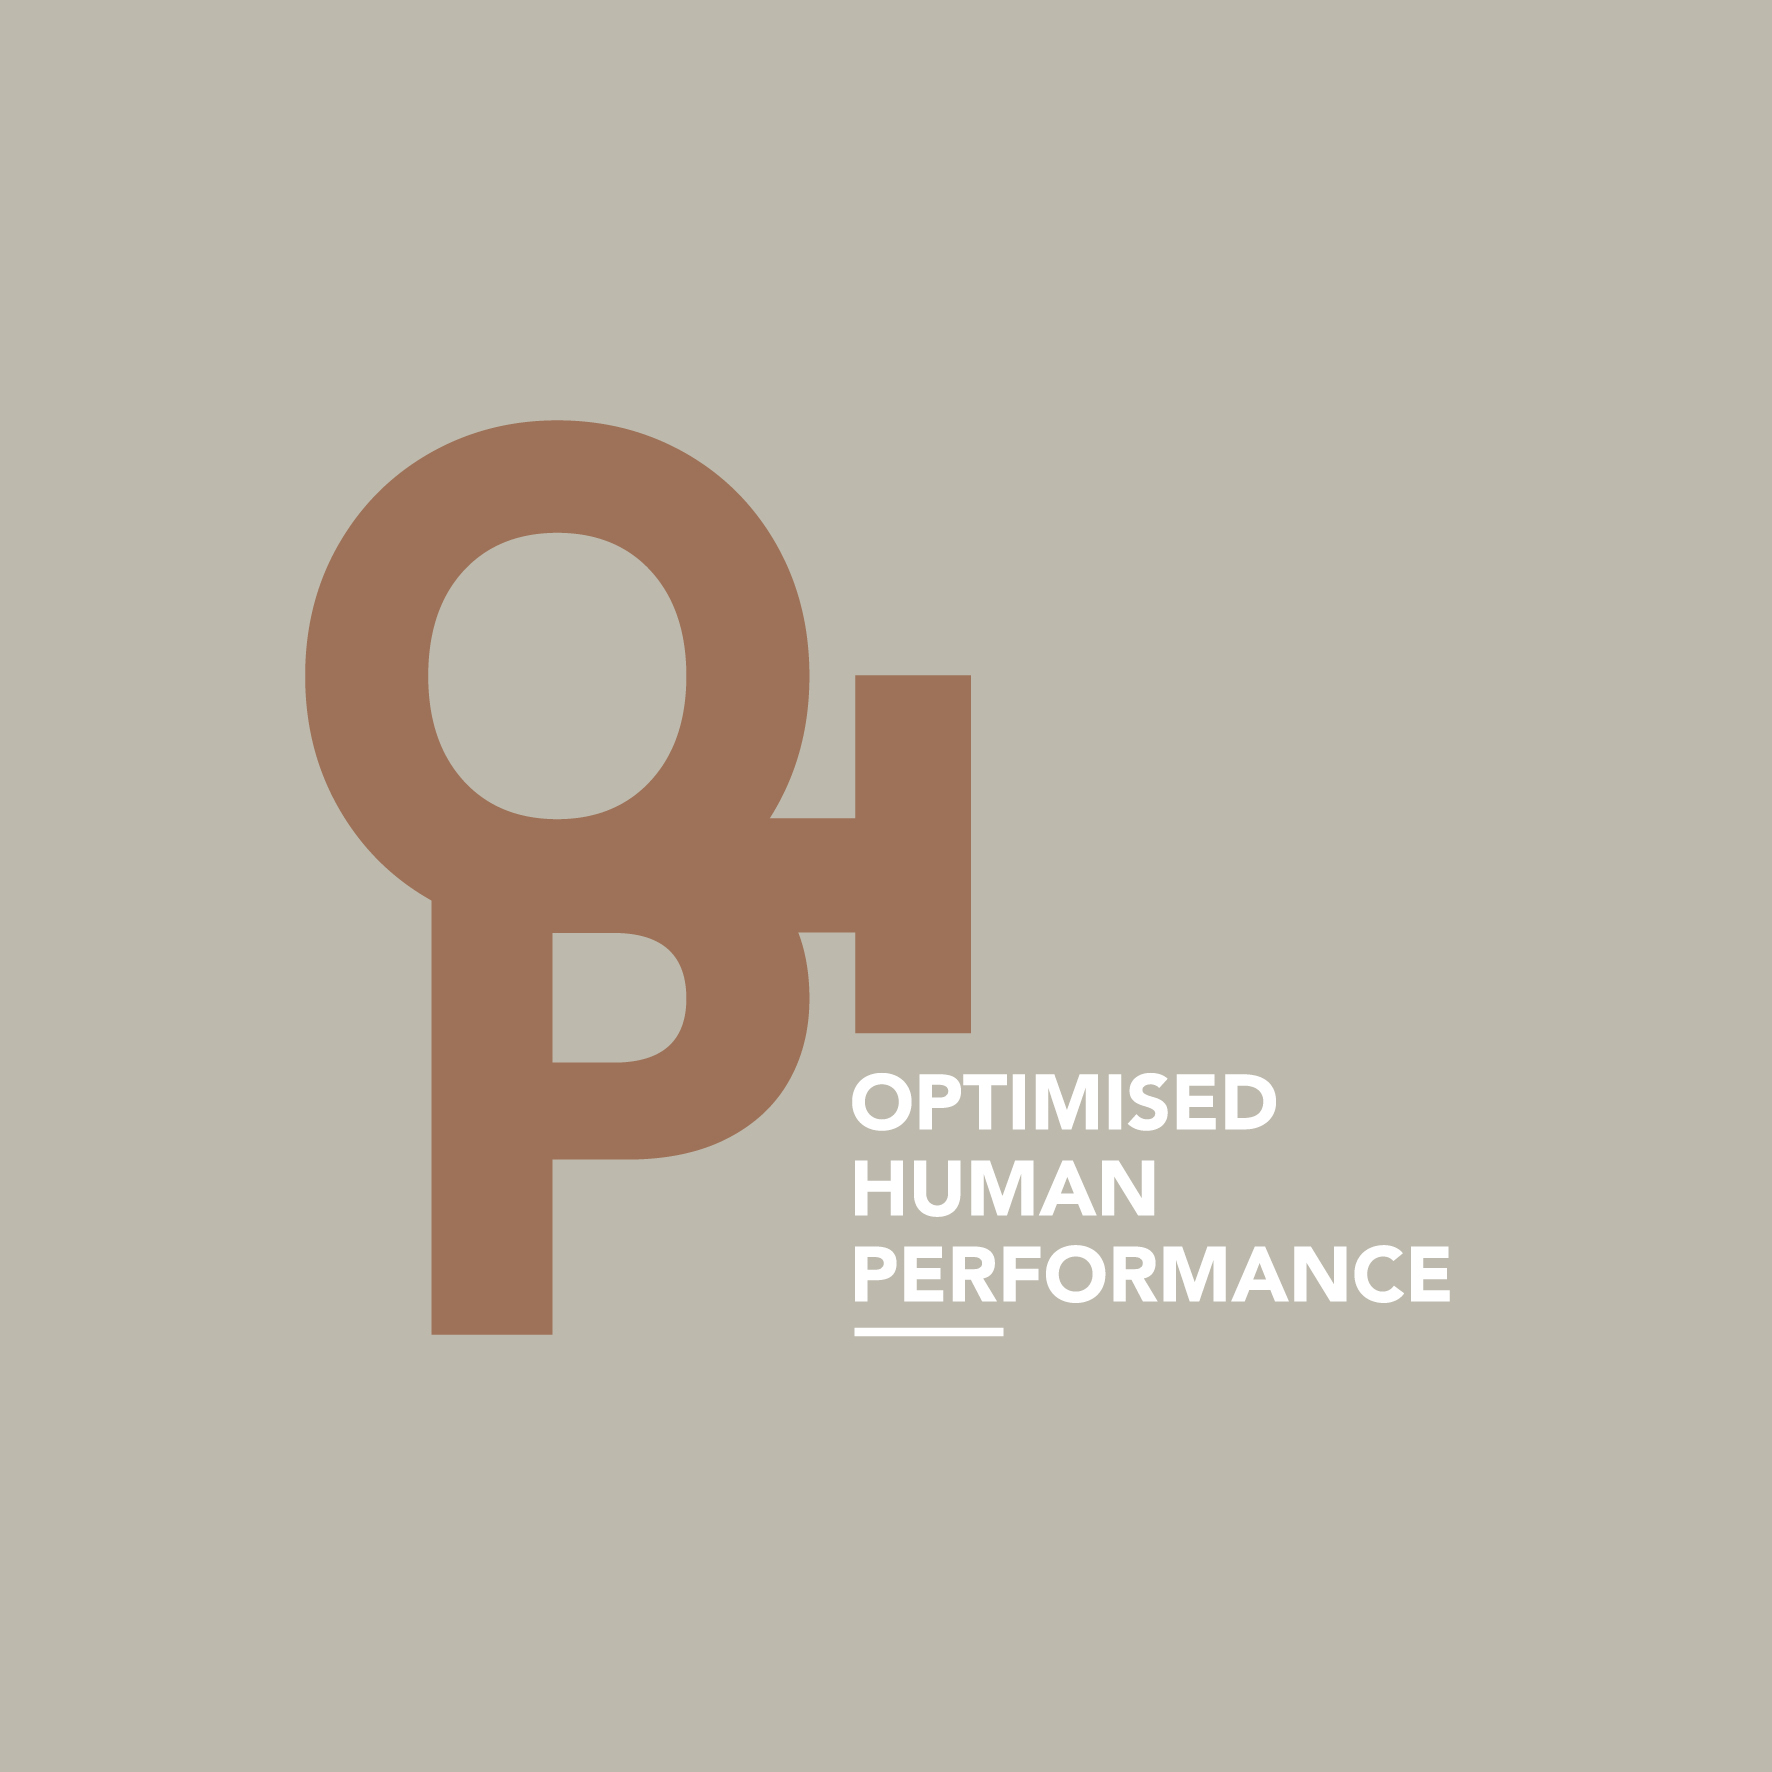 Optimised Human Performance